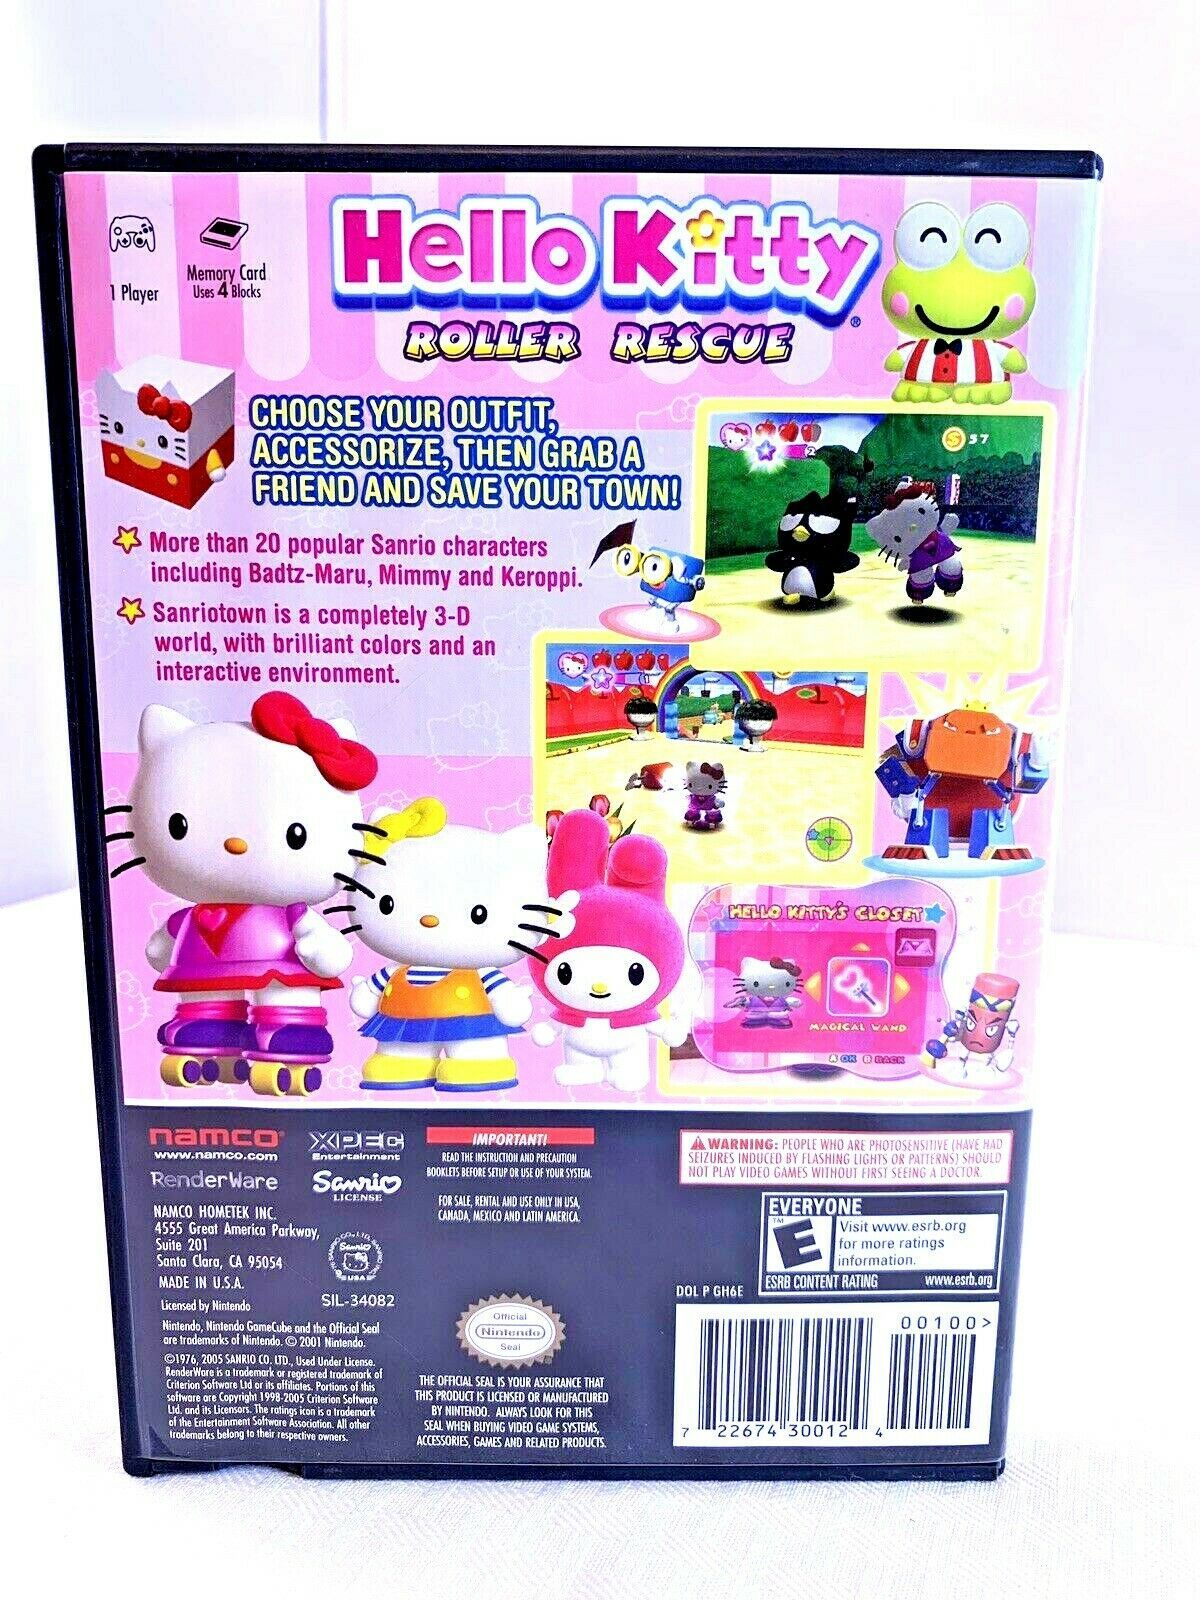 Hello Kitty: Roller Rescue (Nintendo GameCube, 2005) image 2